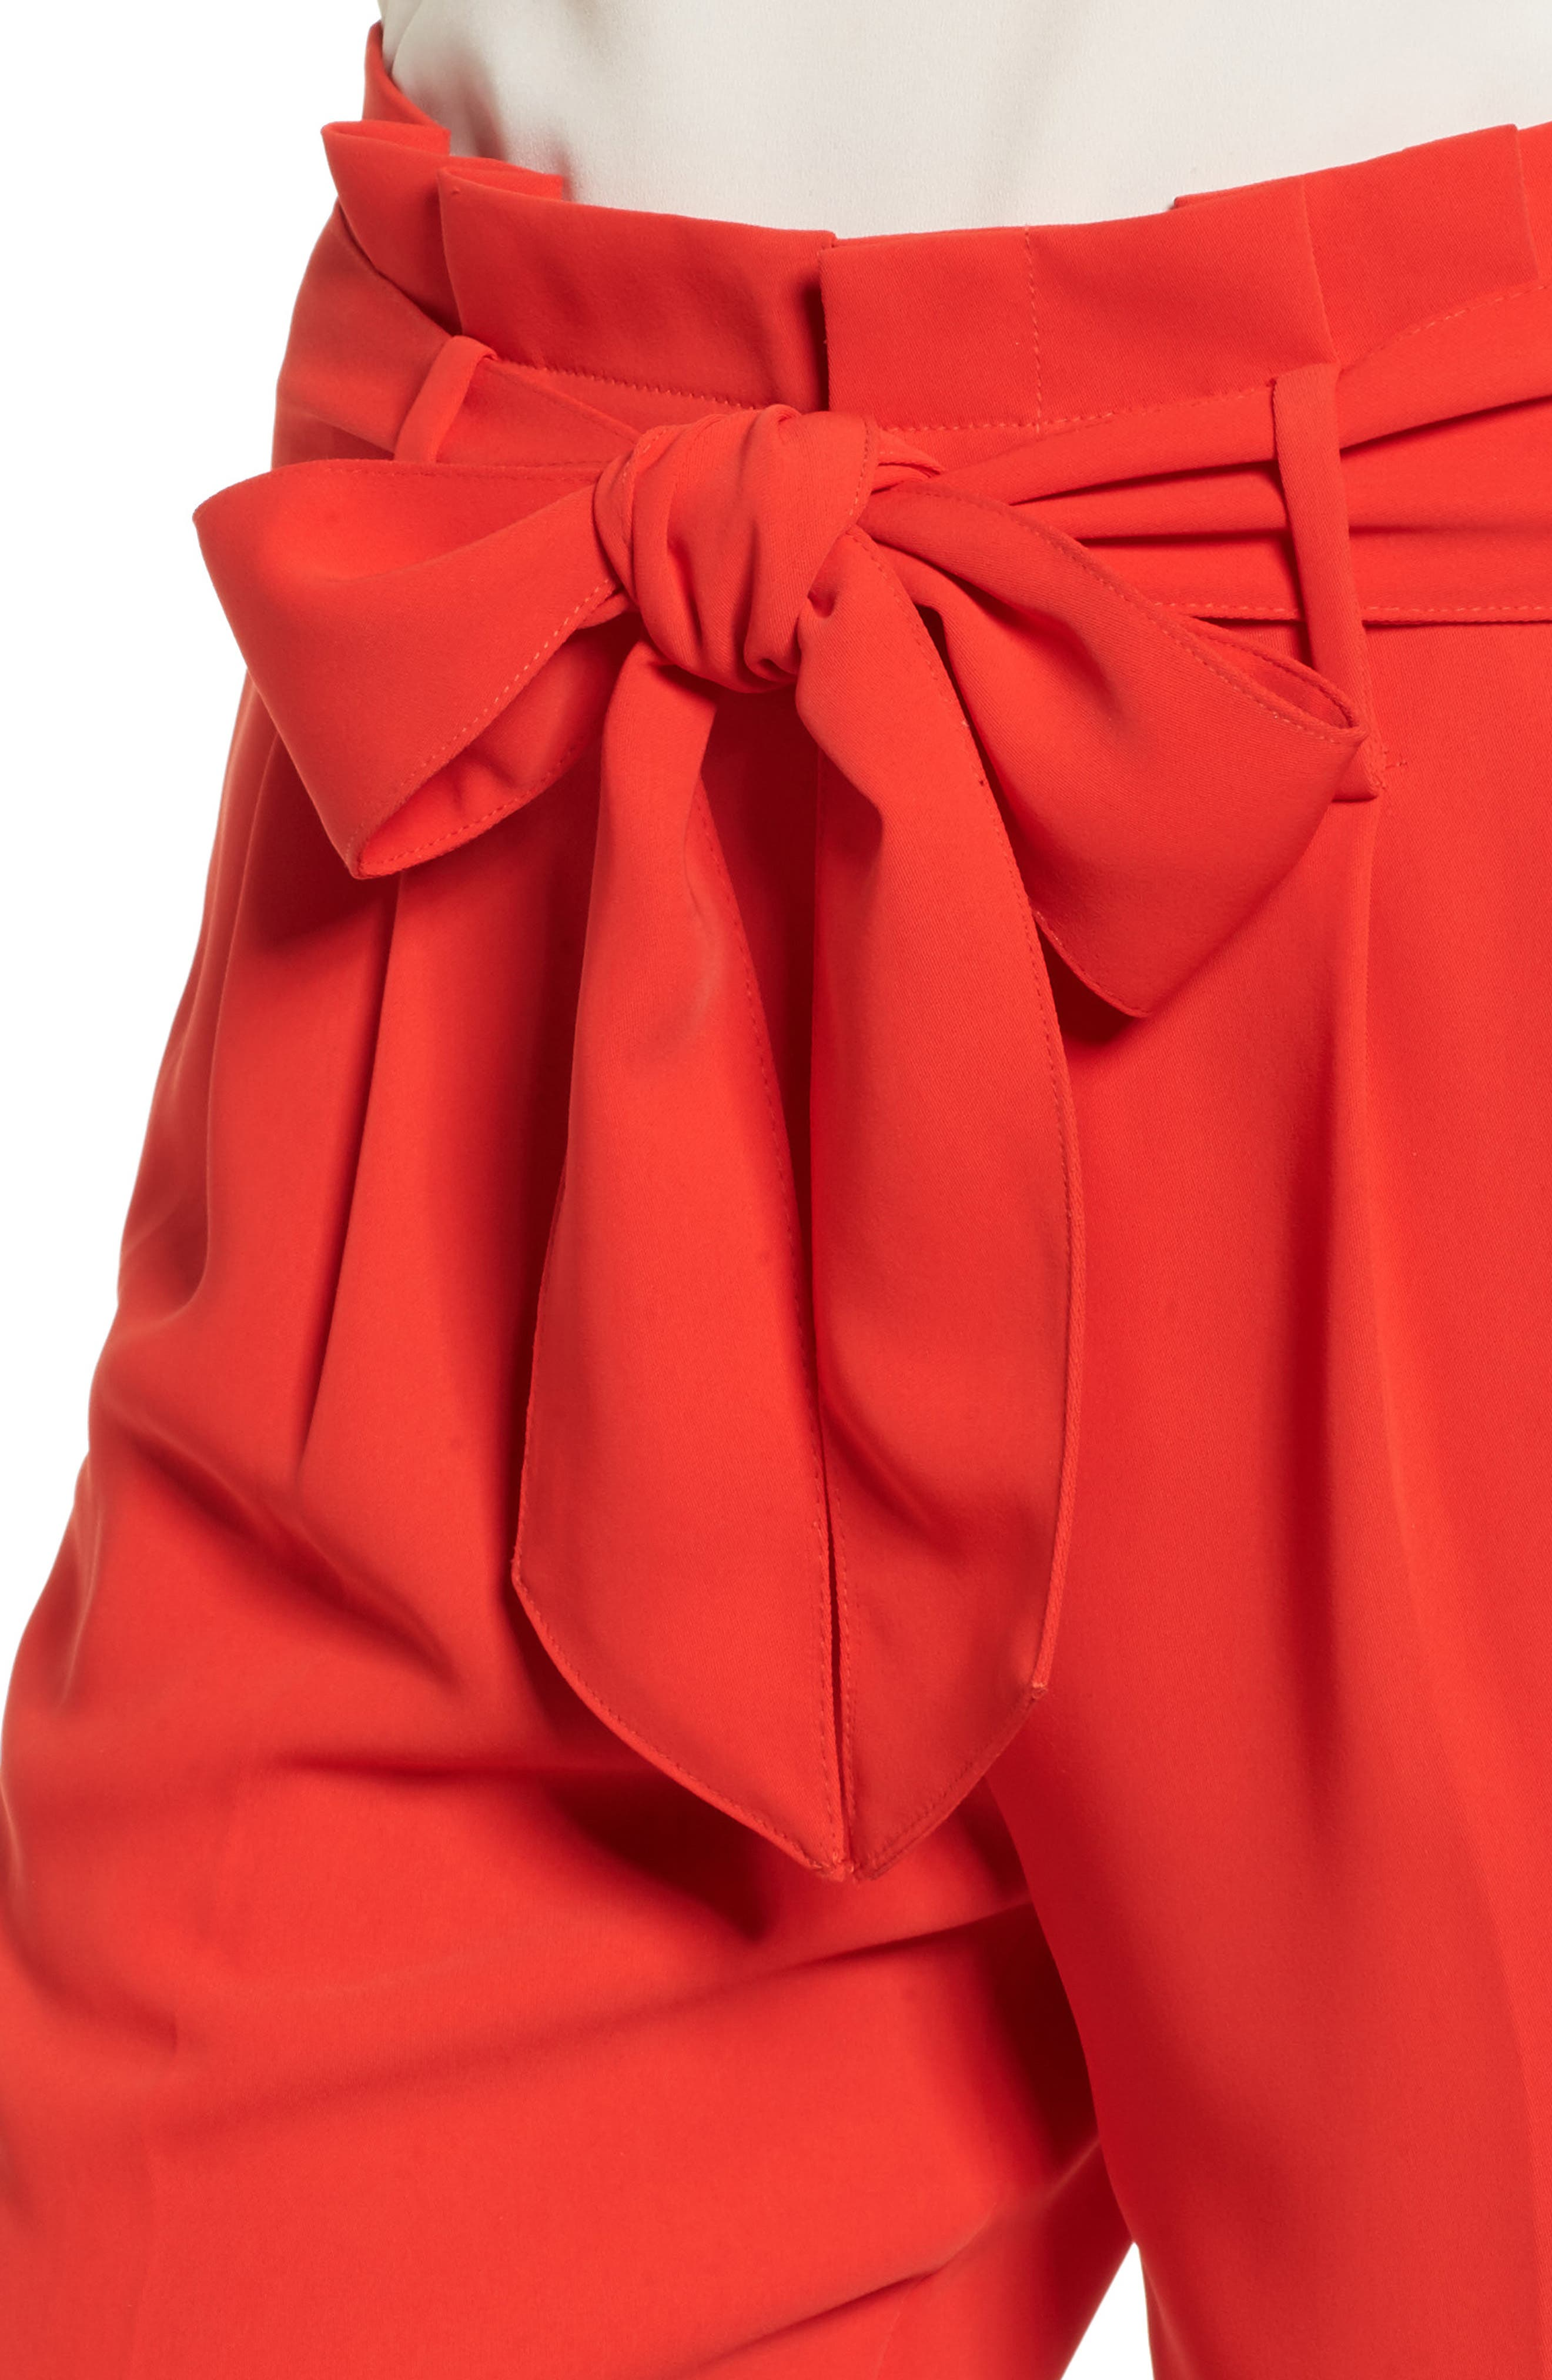 Paperbag Waist Crop Trousers,                             Alternate thumbnail 4, color,                             Red Pop